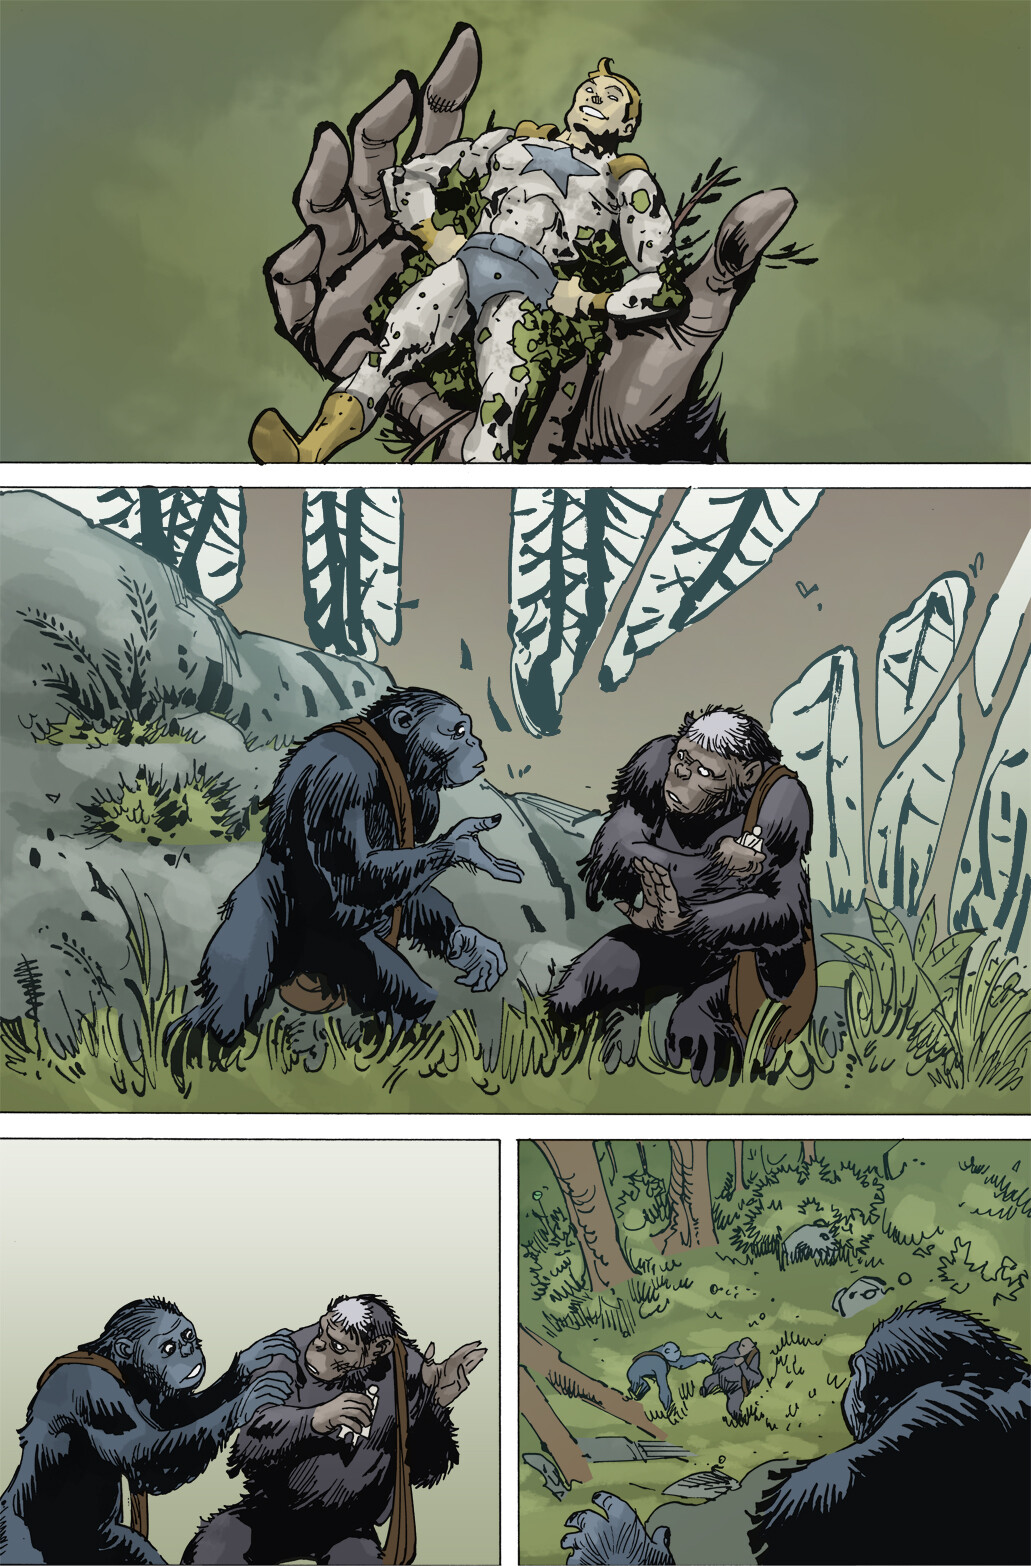 Gabriel cassata planetoftheapes thesimianage sharma 001 colors